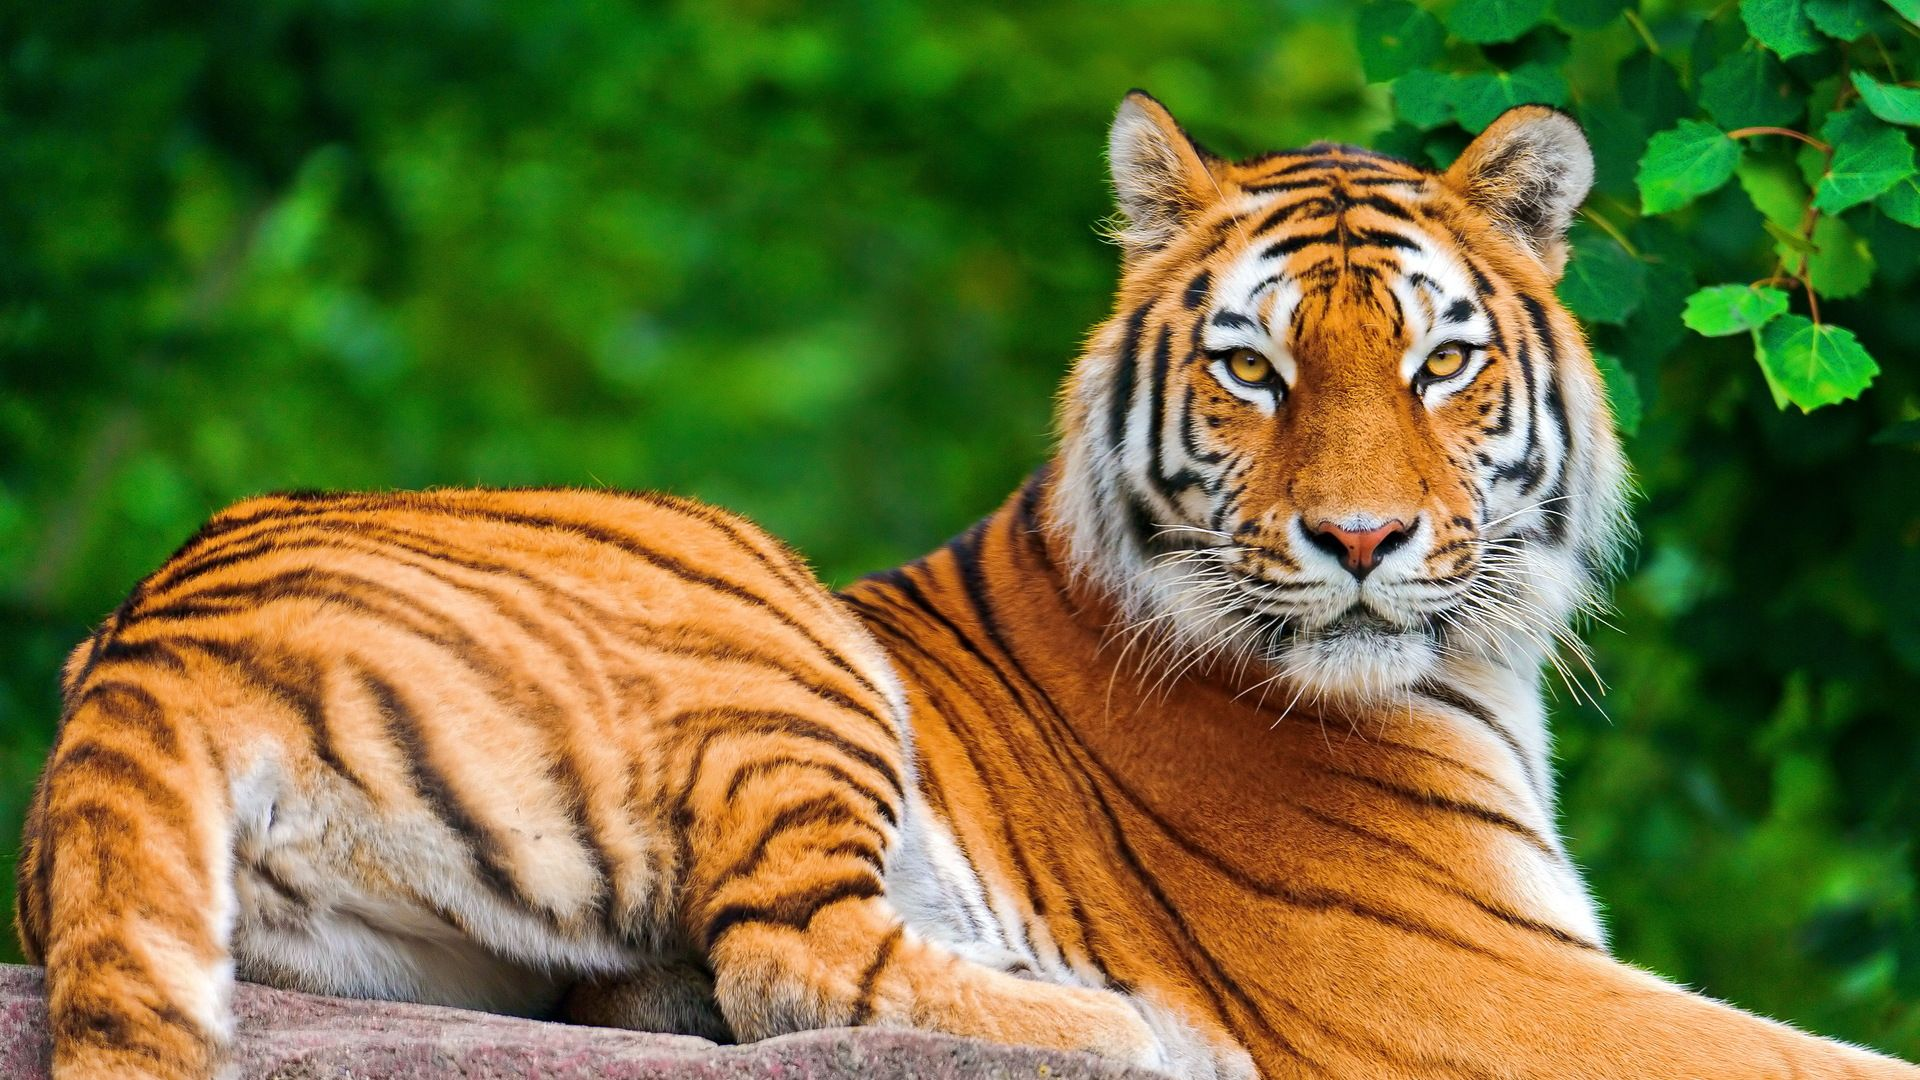 Download Free Tiger Wallpapers Amazing Collection Of Full Screen